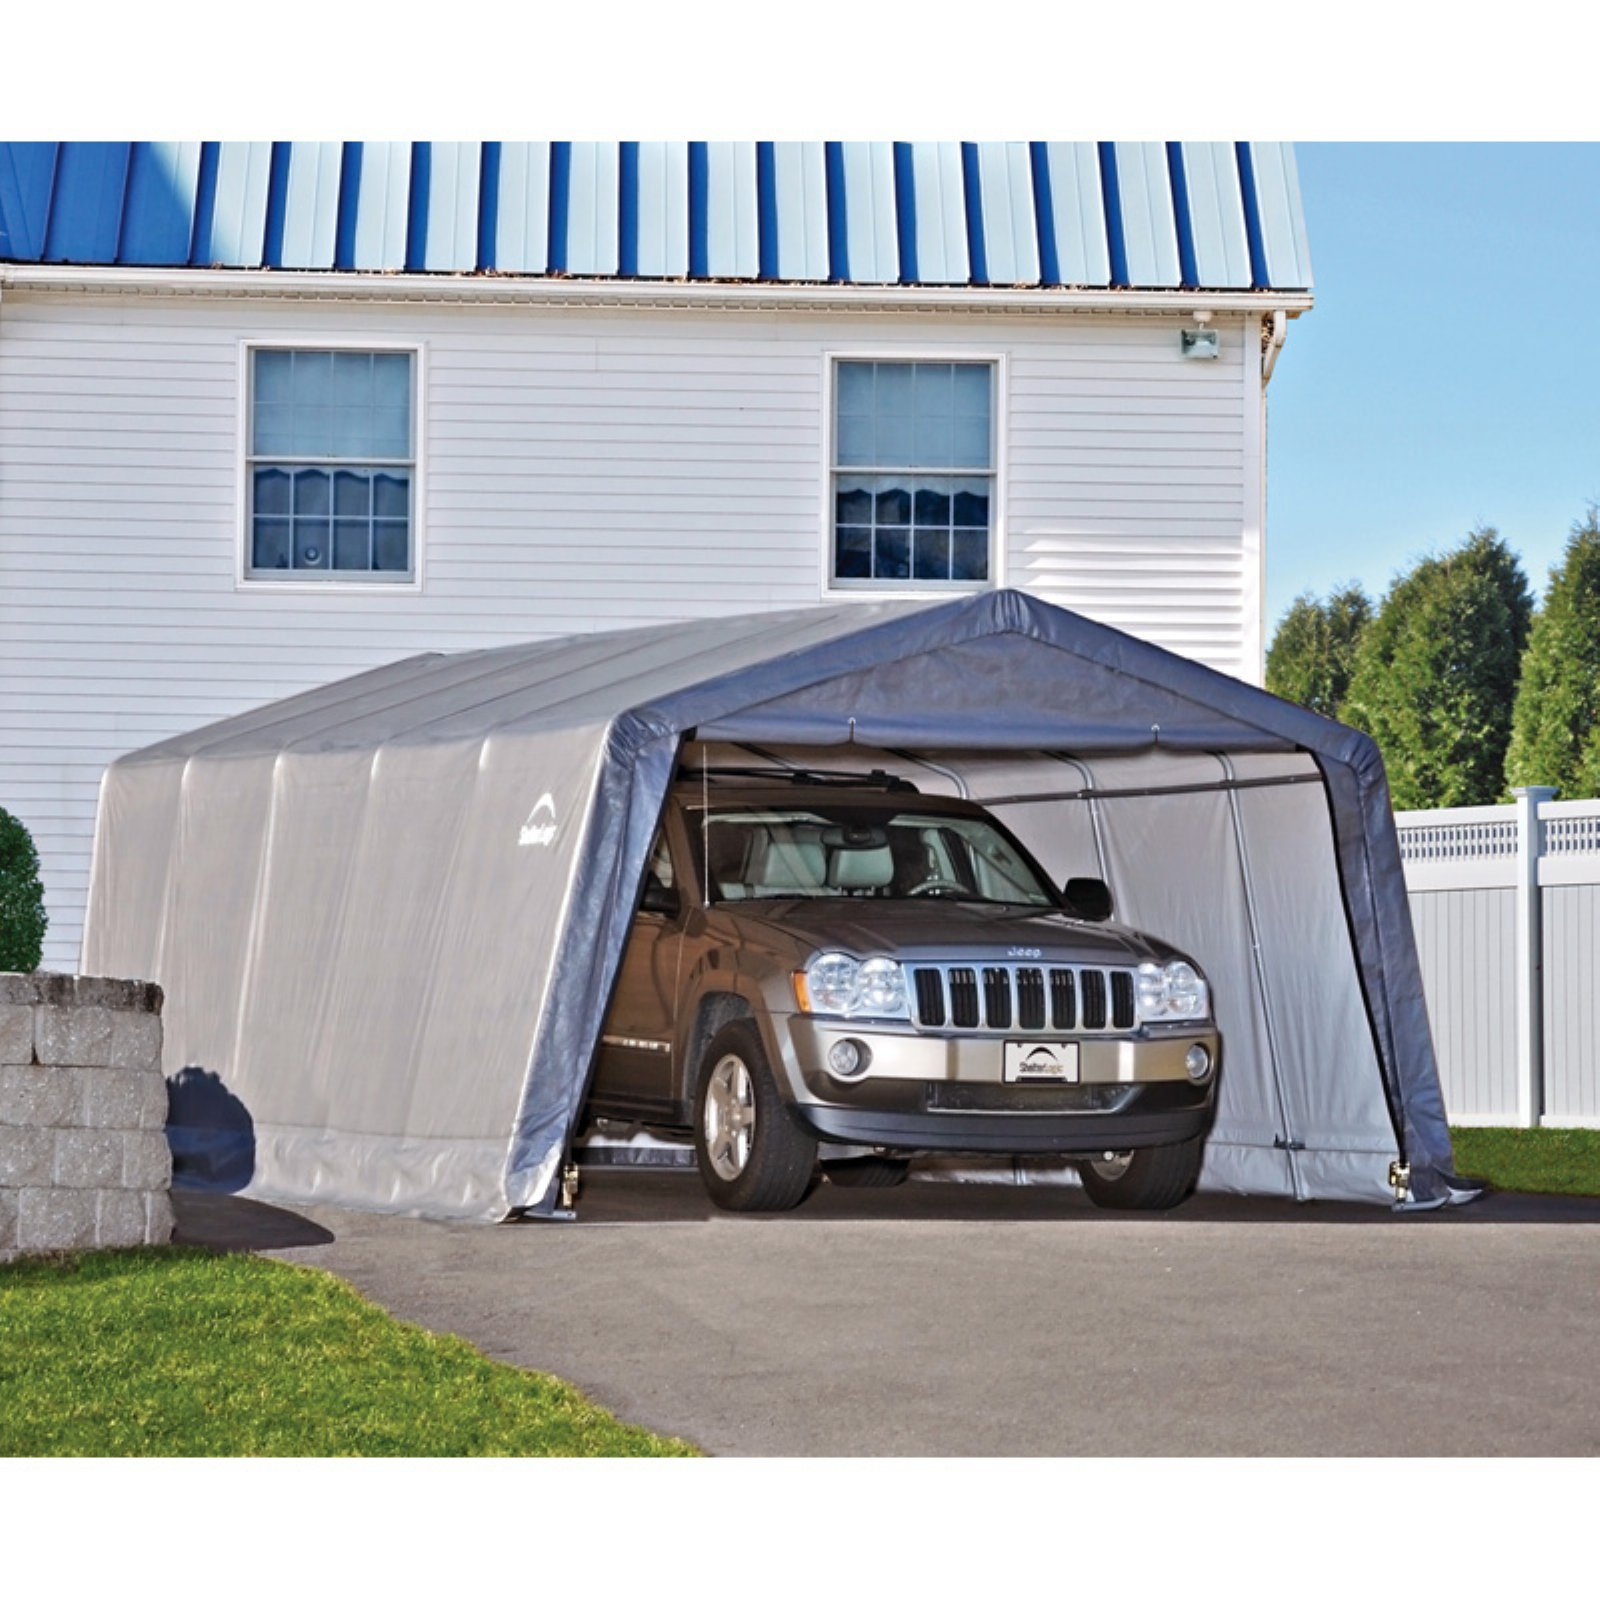 Shelterlogic Garage-in-a-Box 12' x 20' x 8' Peak Style Instant Garage, Gray